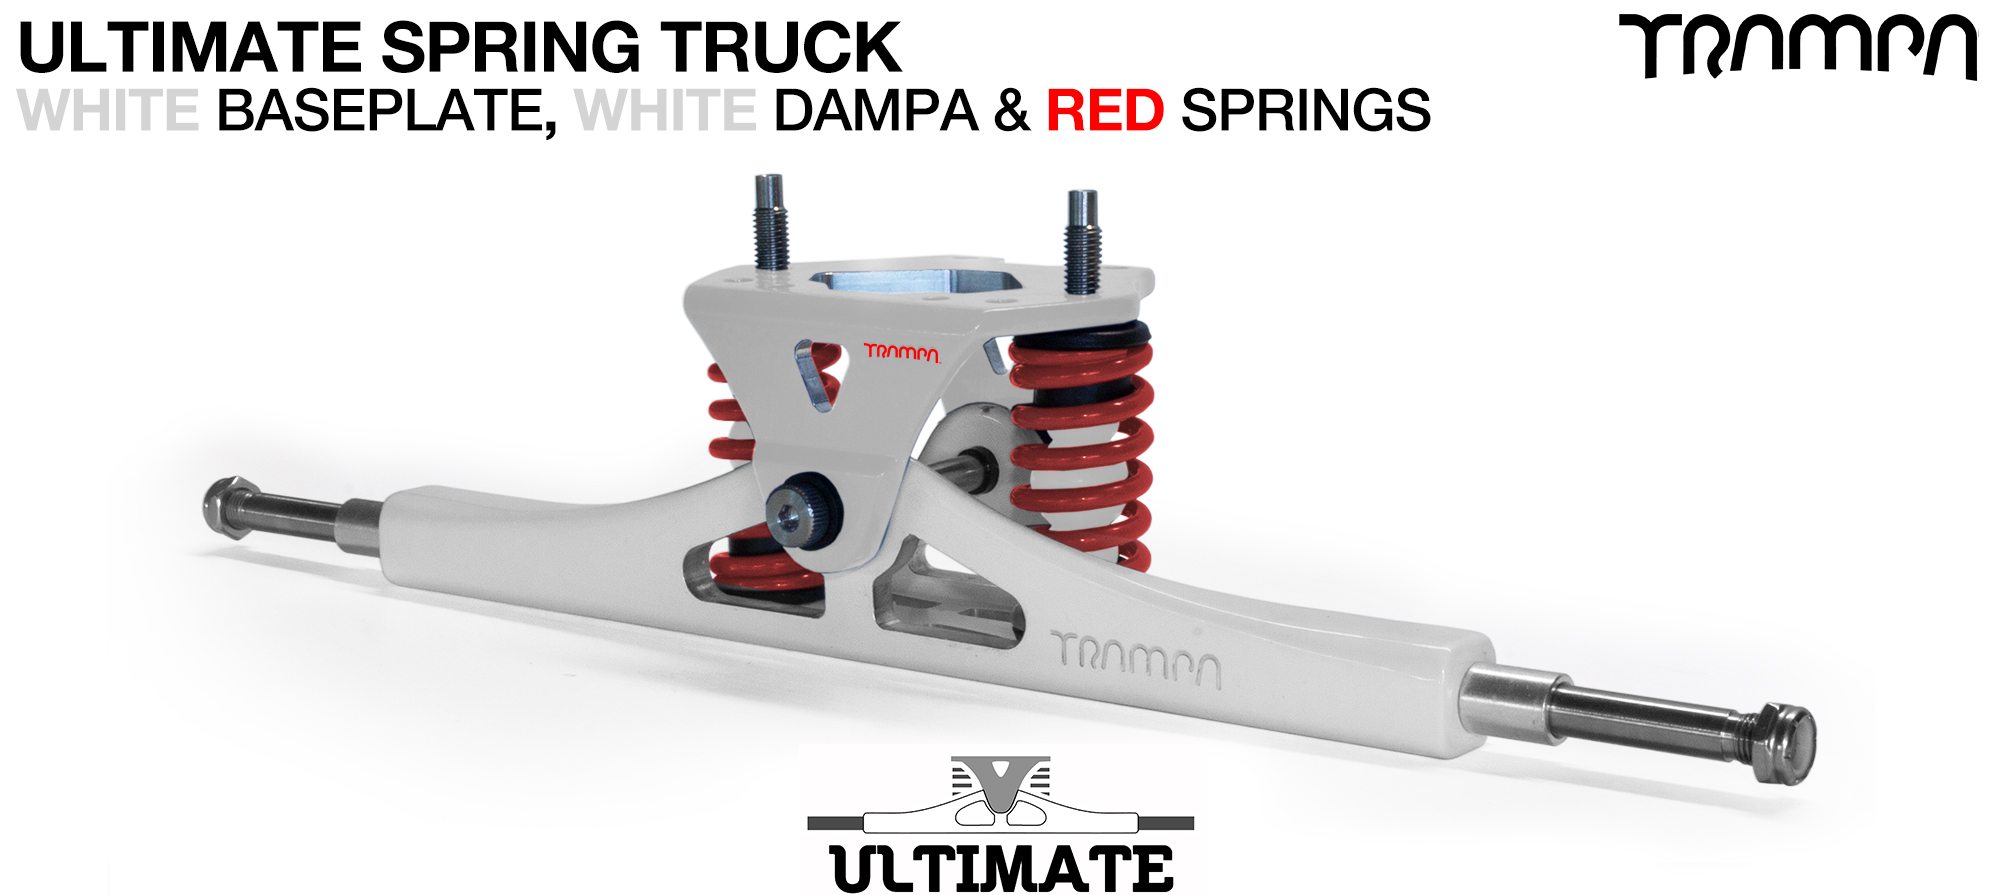 ULTIMATE ATB TRUCK - WHITE ATB Hanger with TITANIUM Axles & Kingpin & WHITE with RED logo Baseplate